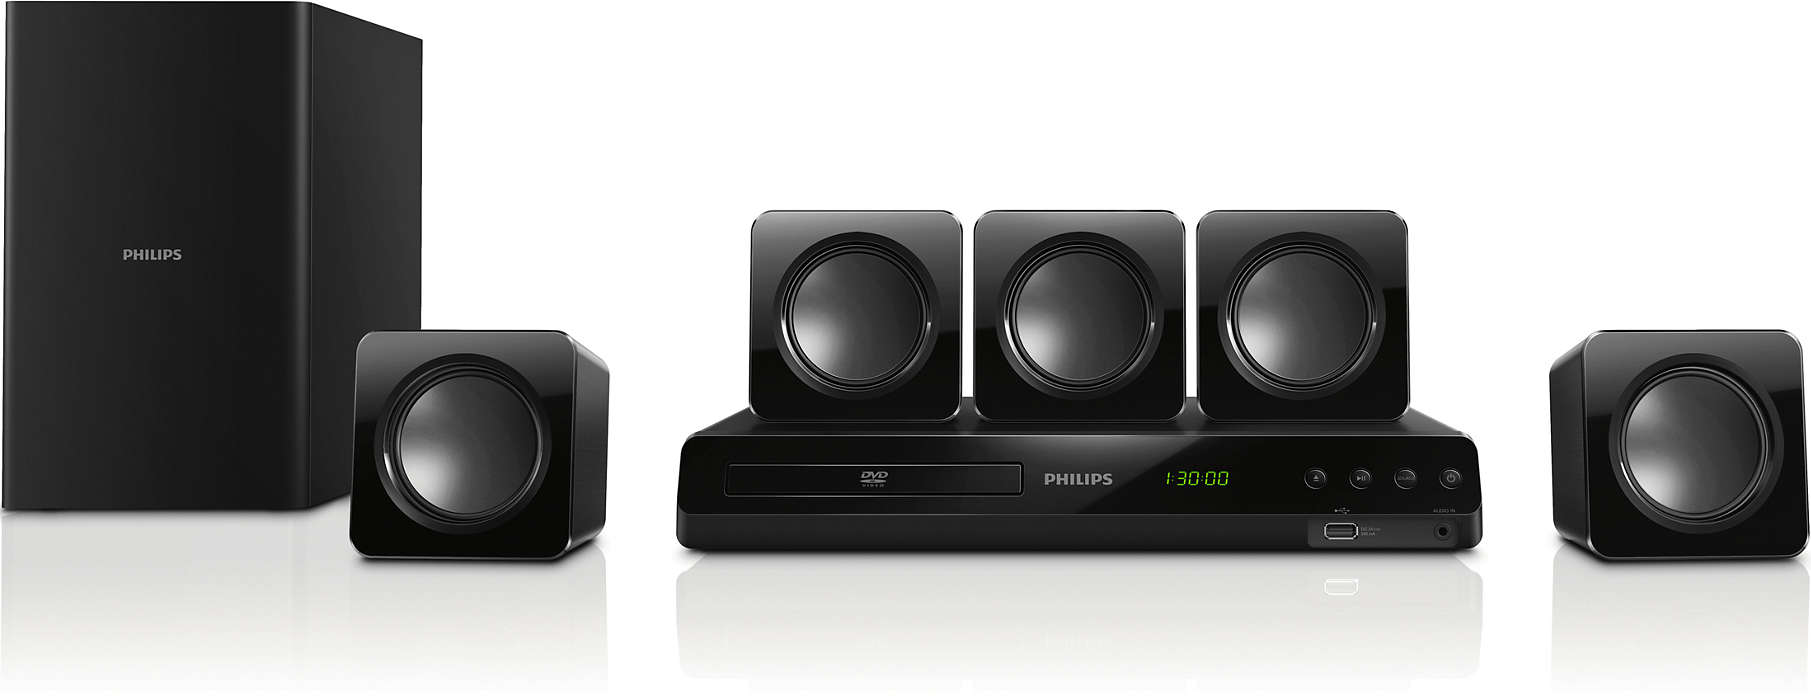 Powerful surround sound from compact speakers